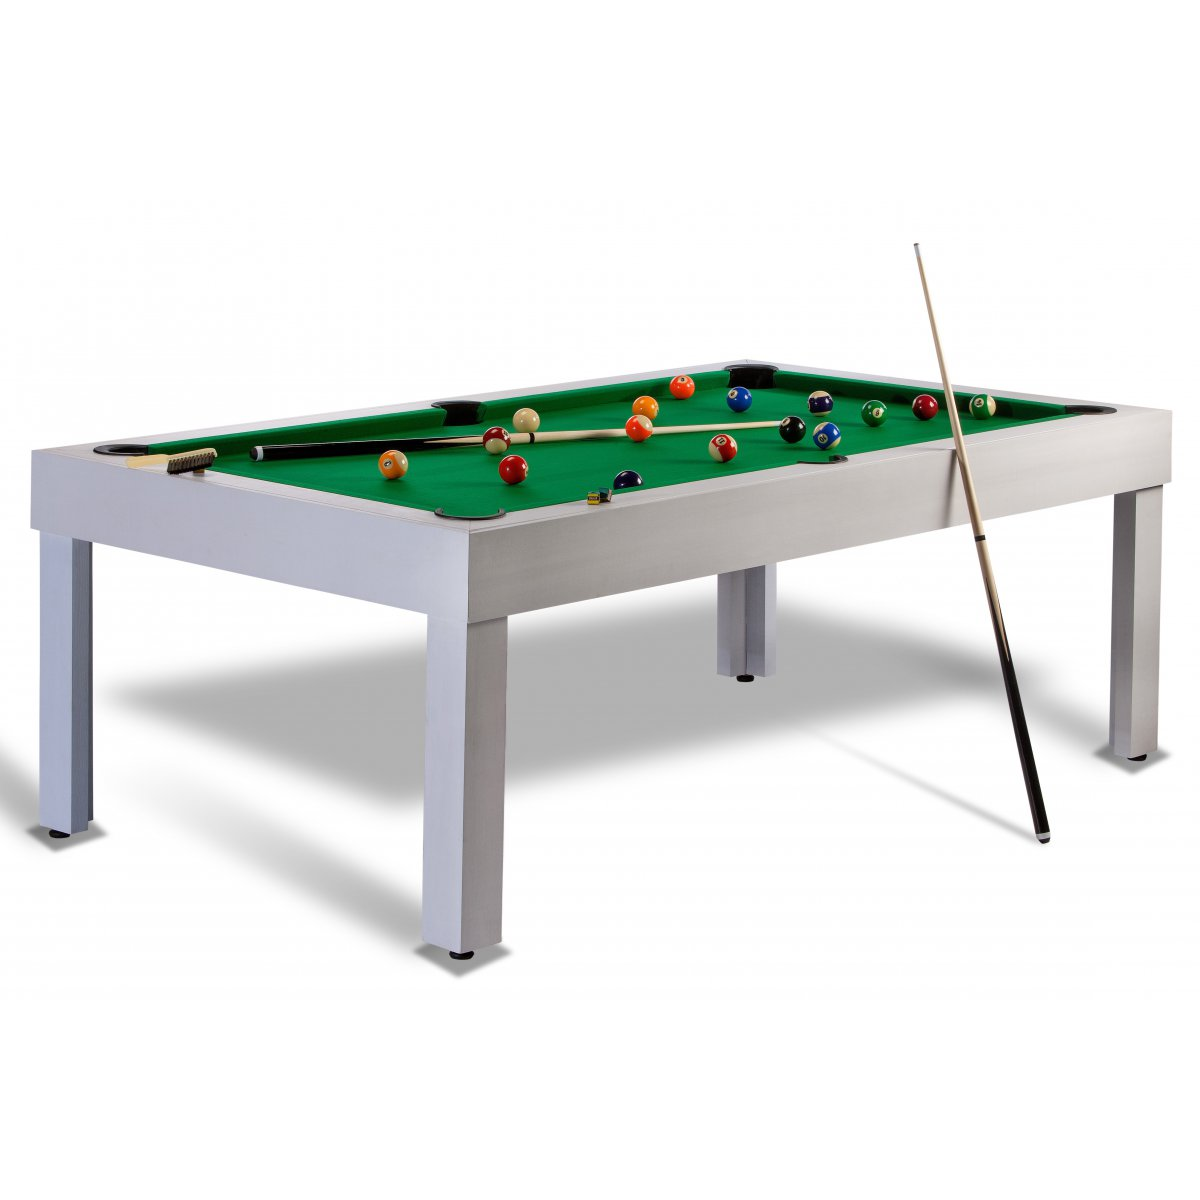 D co table de billard convertible 19 montpellier table montpellier tq - Billard convertible table ...